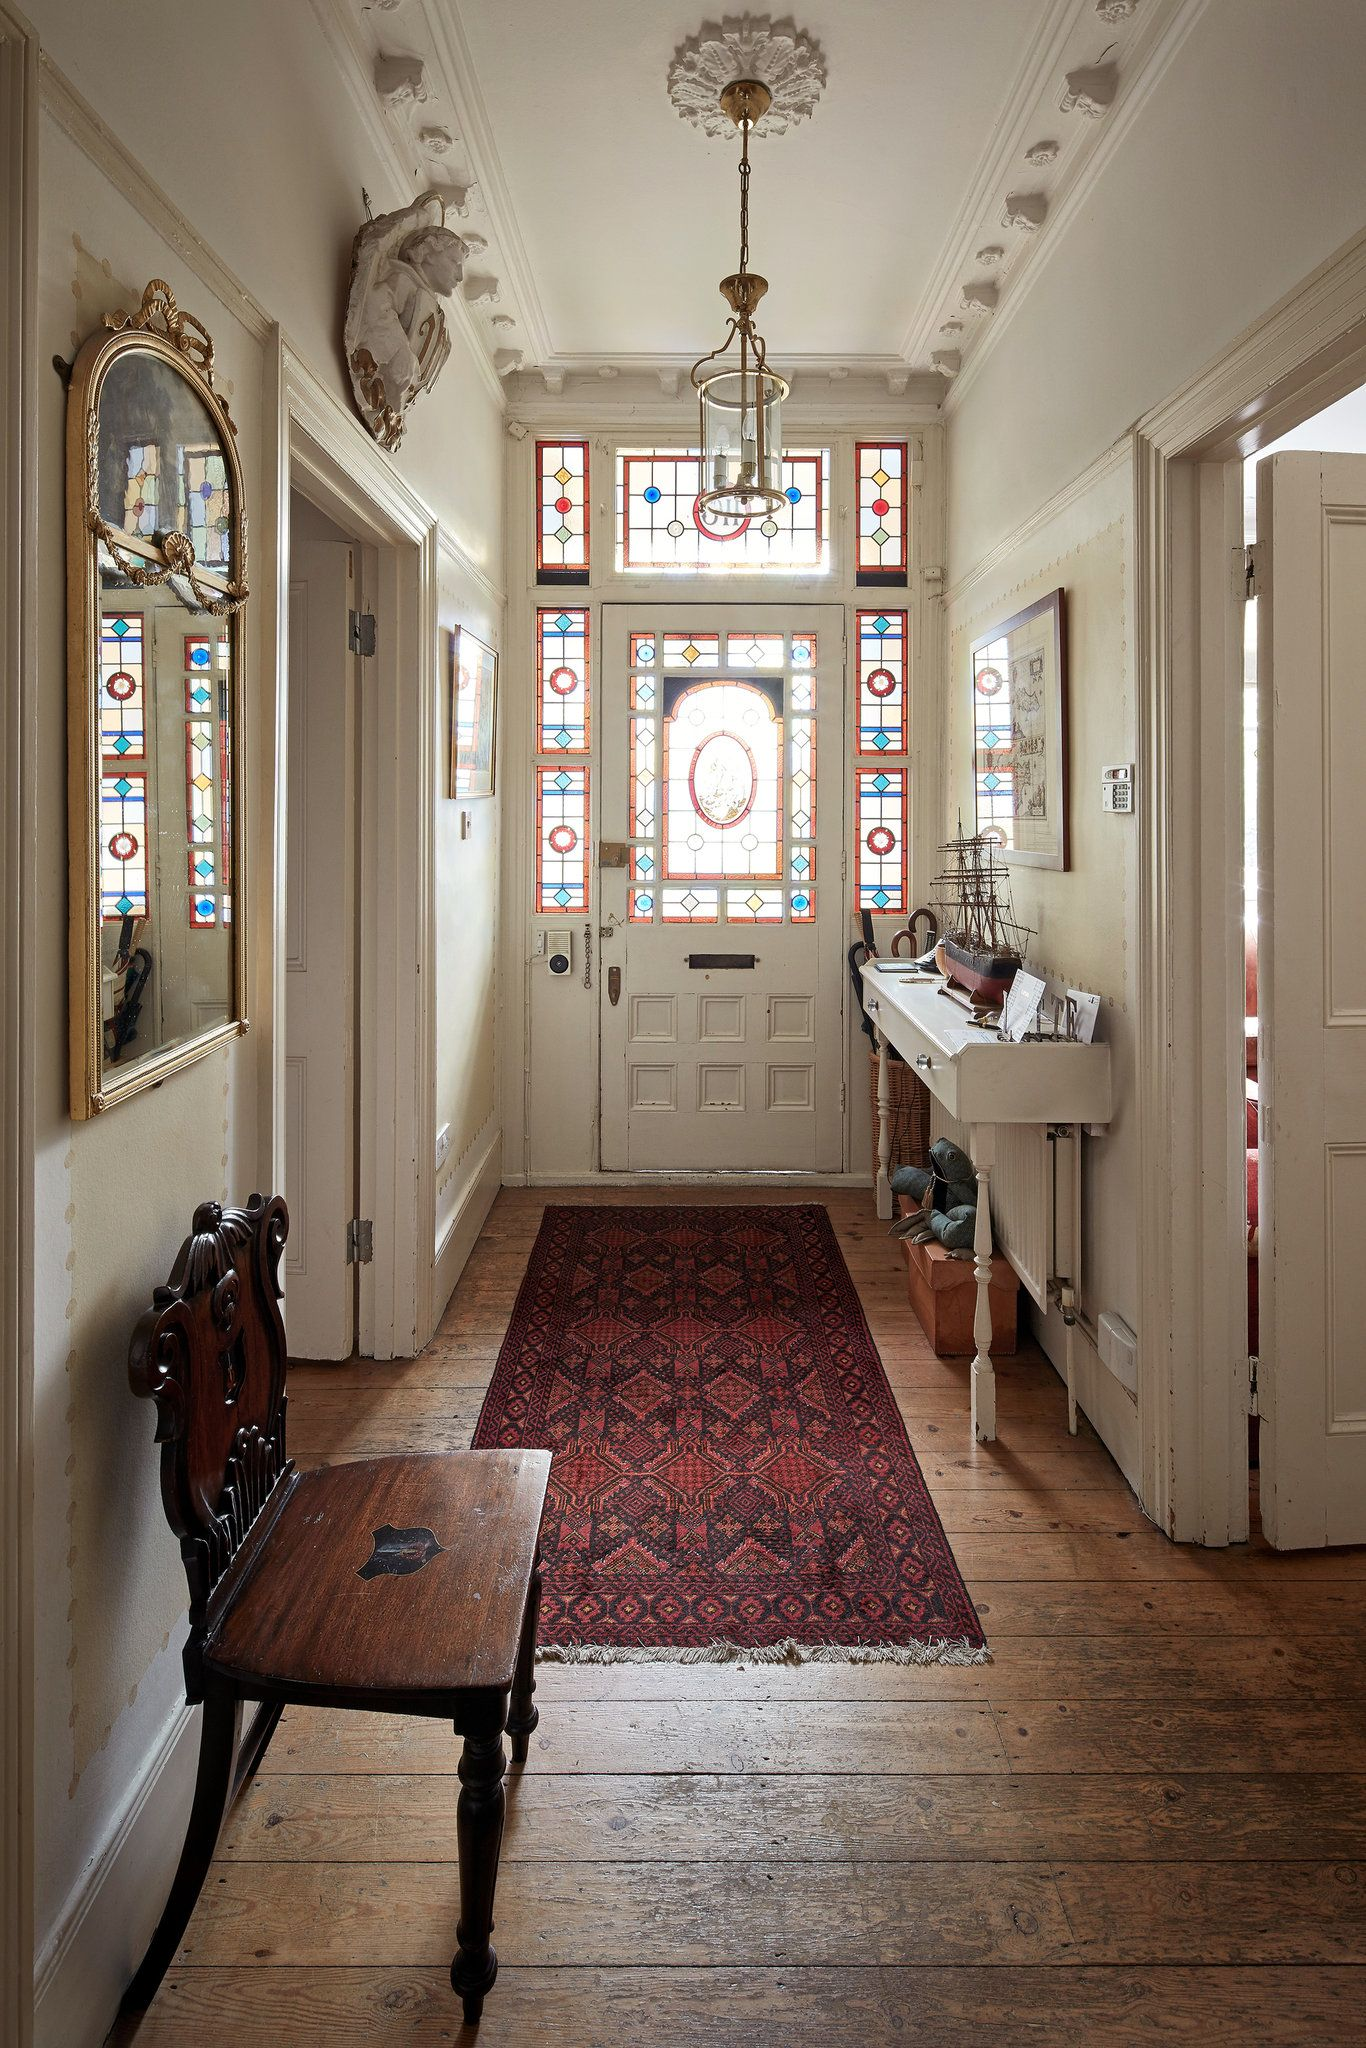 World Home Decor The Entry In A Victorian Townhouse In Southwest London